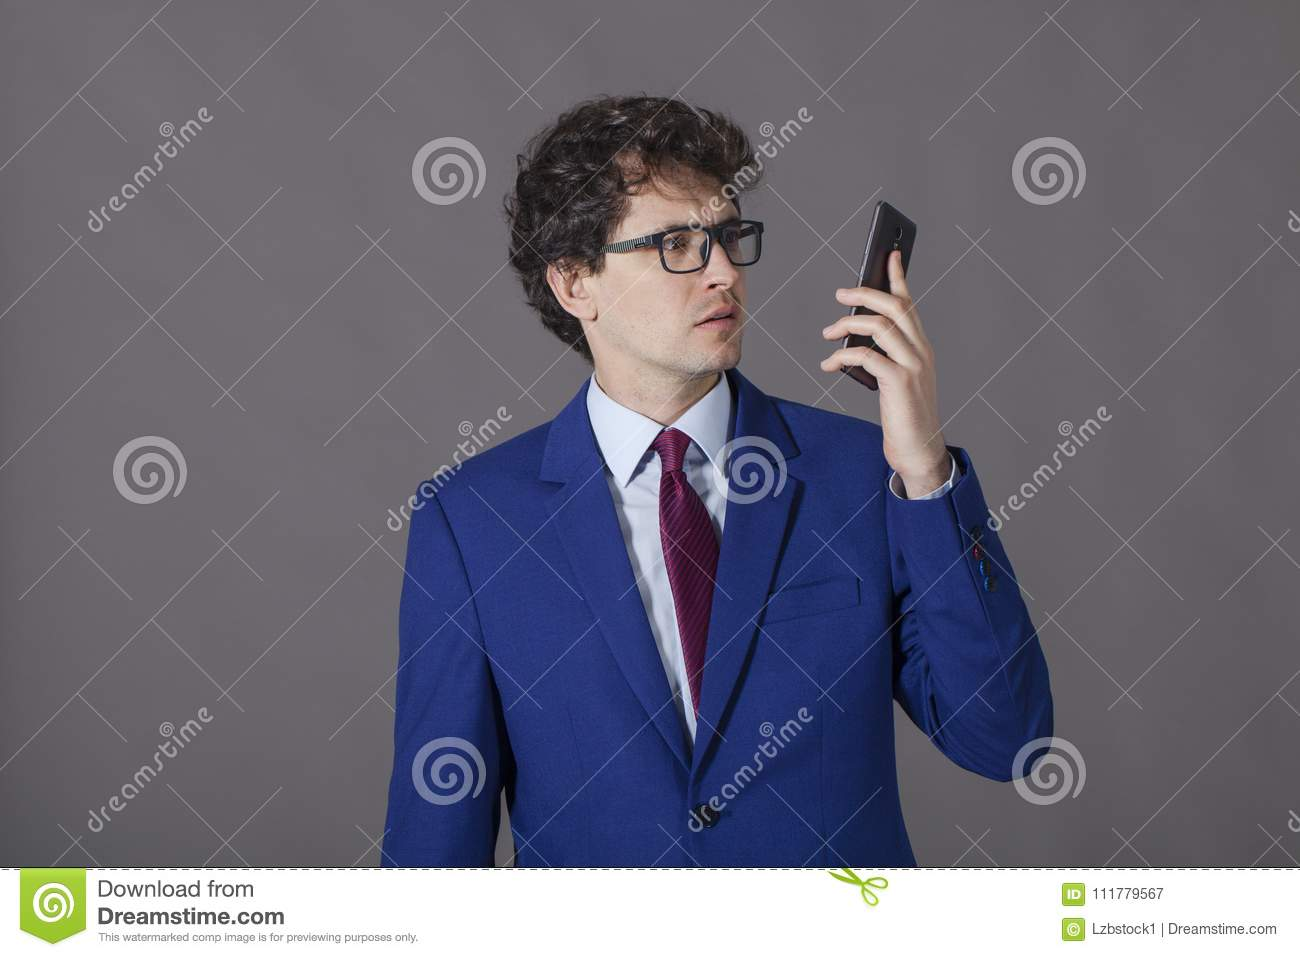 Guy with good look got bad message